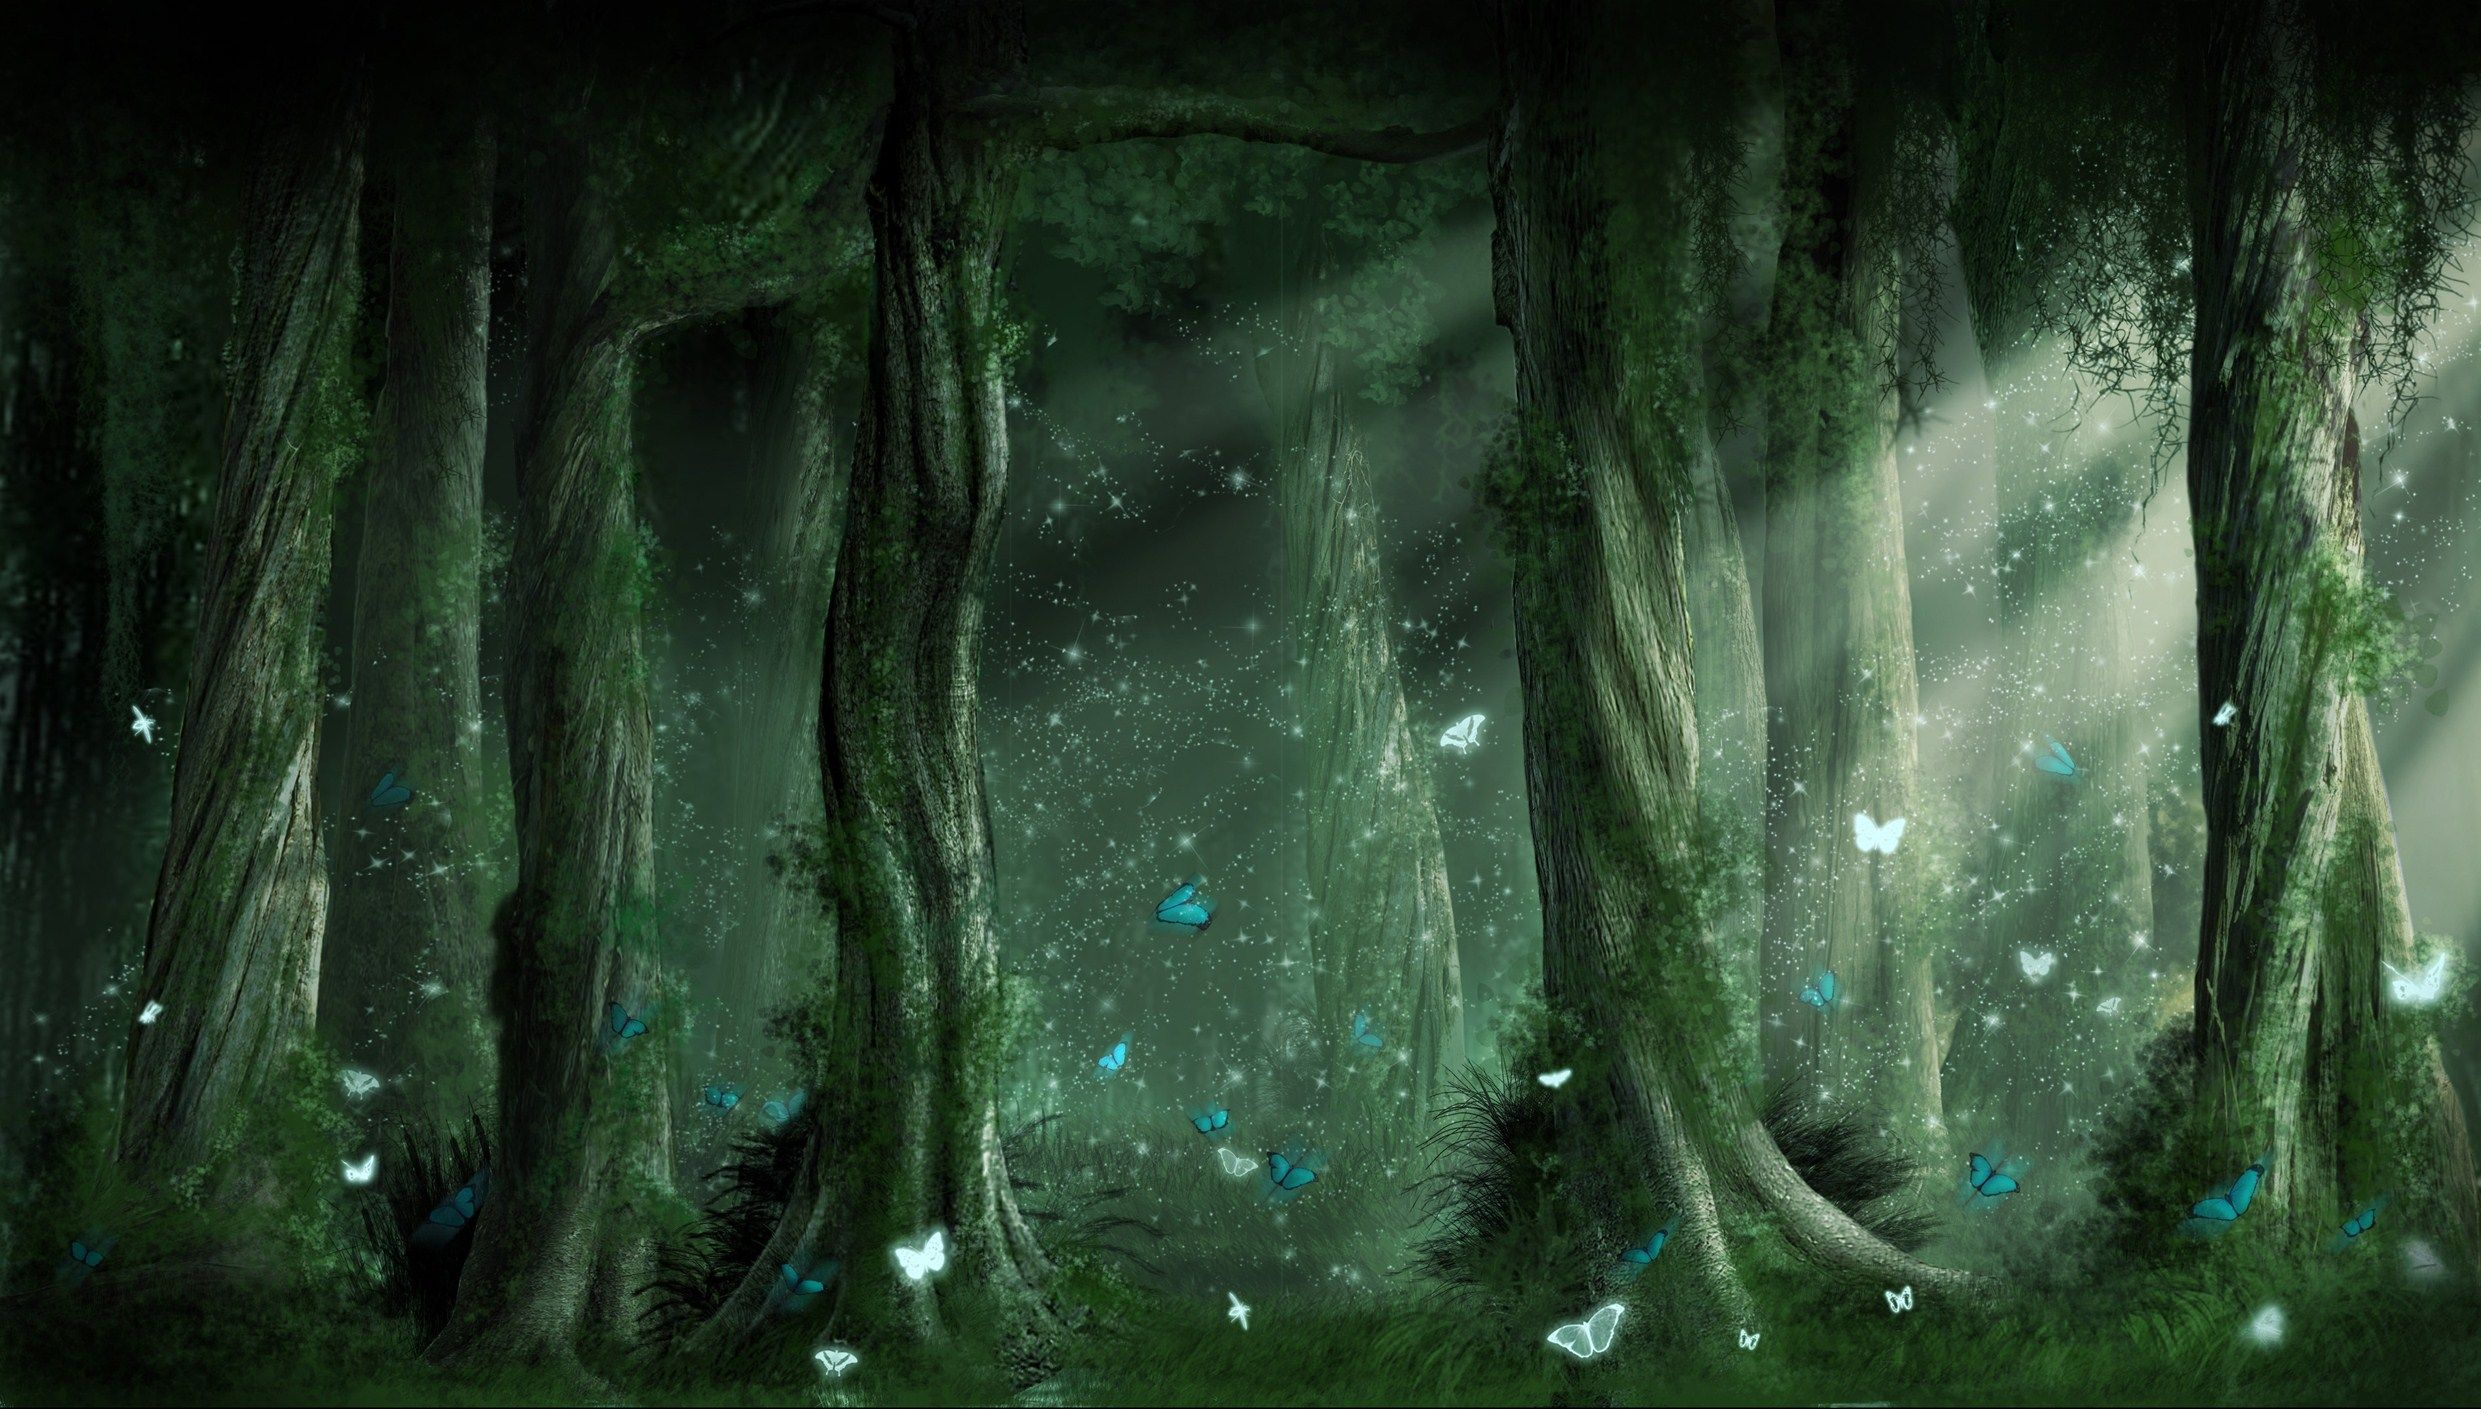 Fantasy Forest Fantasy Forest Wallpaper Background 2481 X 1409 Id 129281 Forest Background Fantasy Forest Fantasy Background